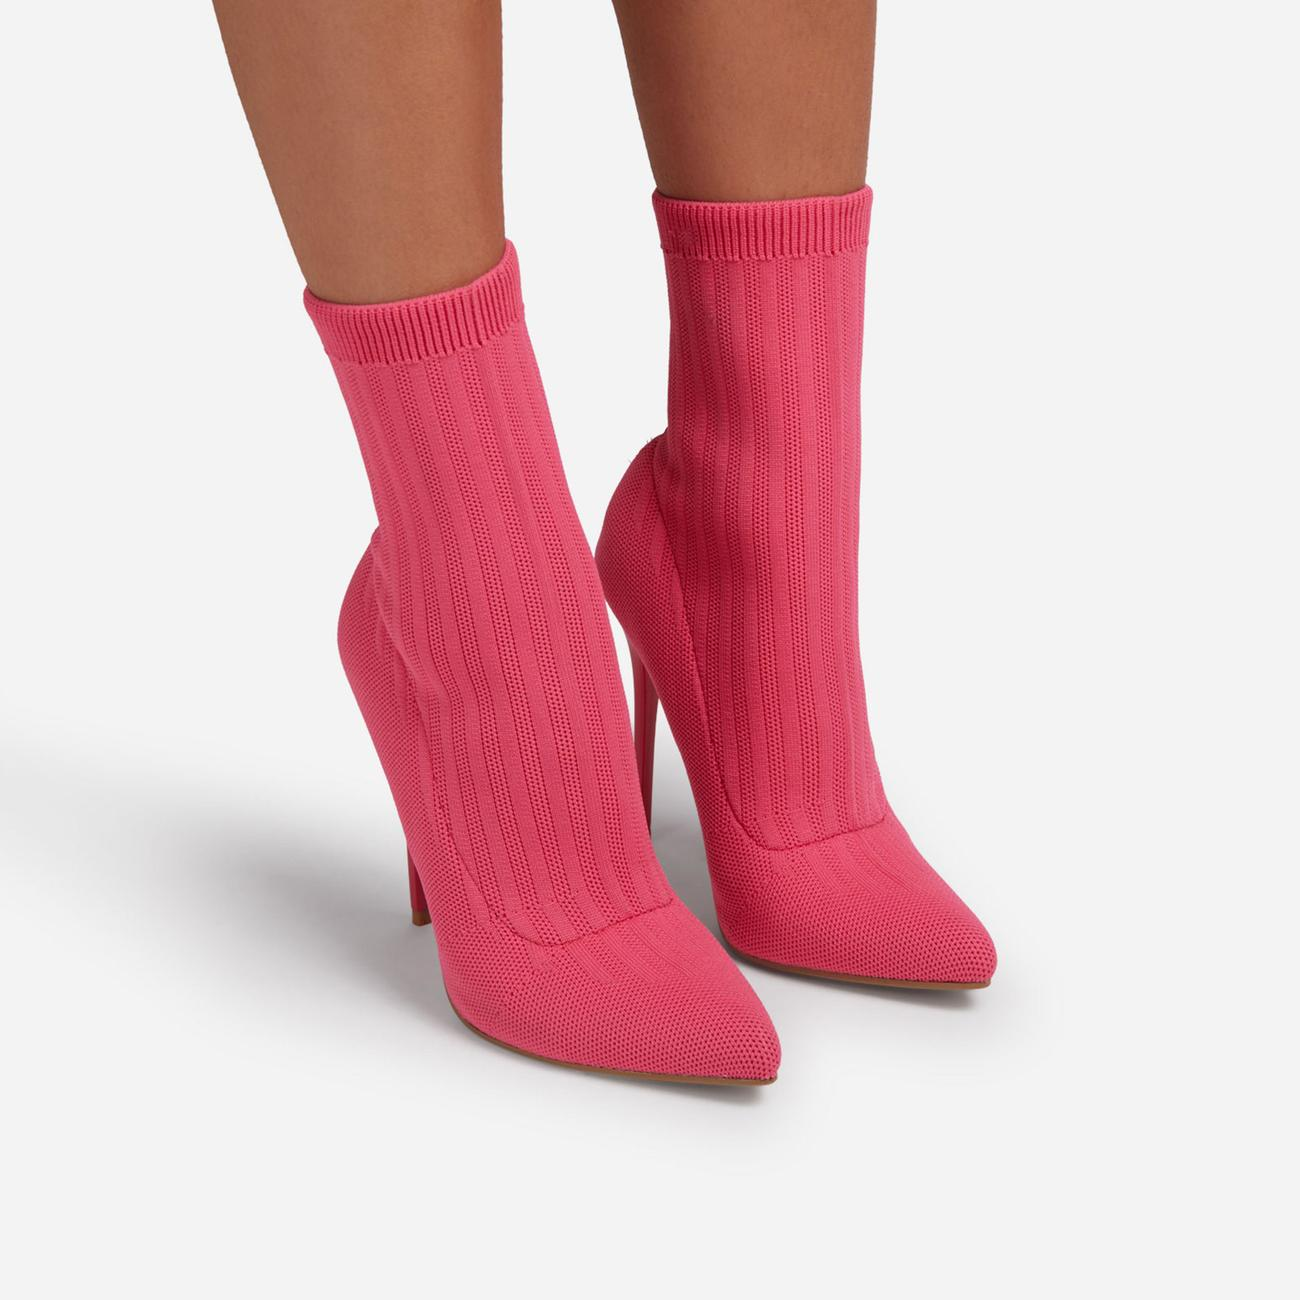 Ricochet Pointed Toe Ankle Sock Boot In Pink Ribbed Knit Image 3